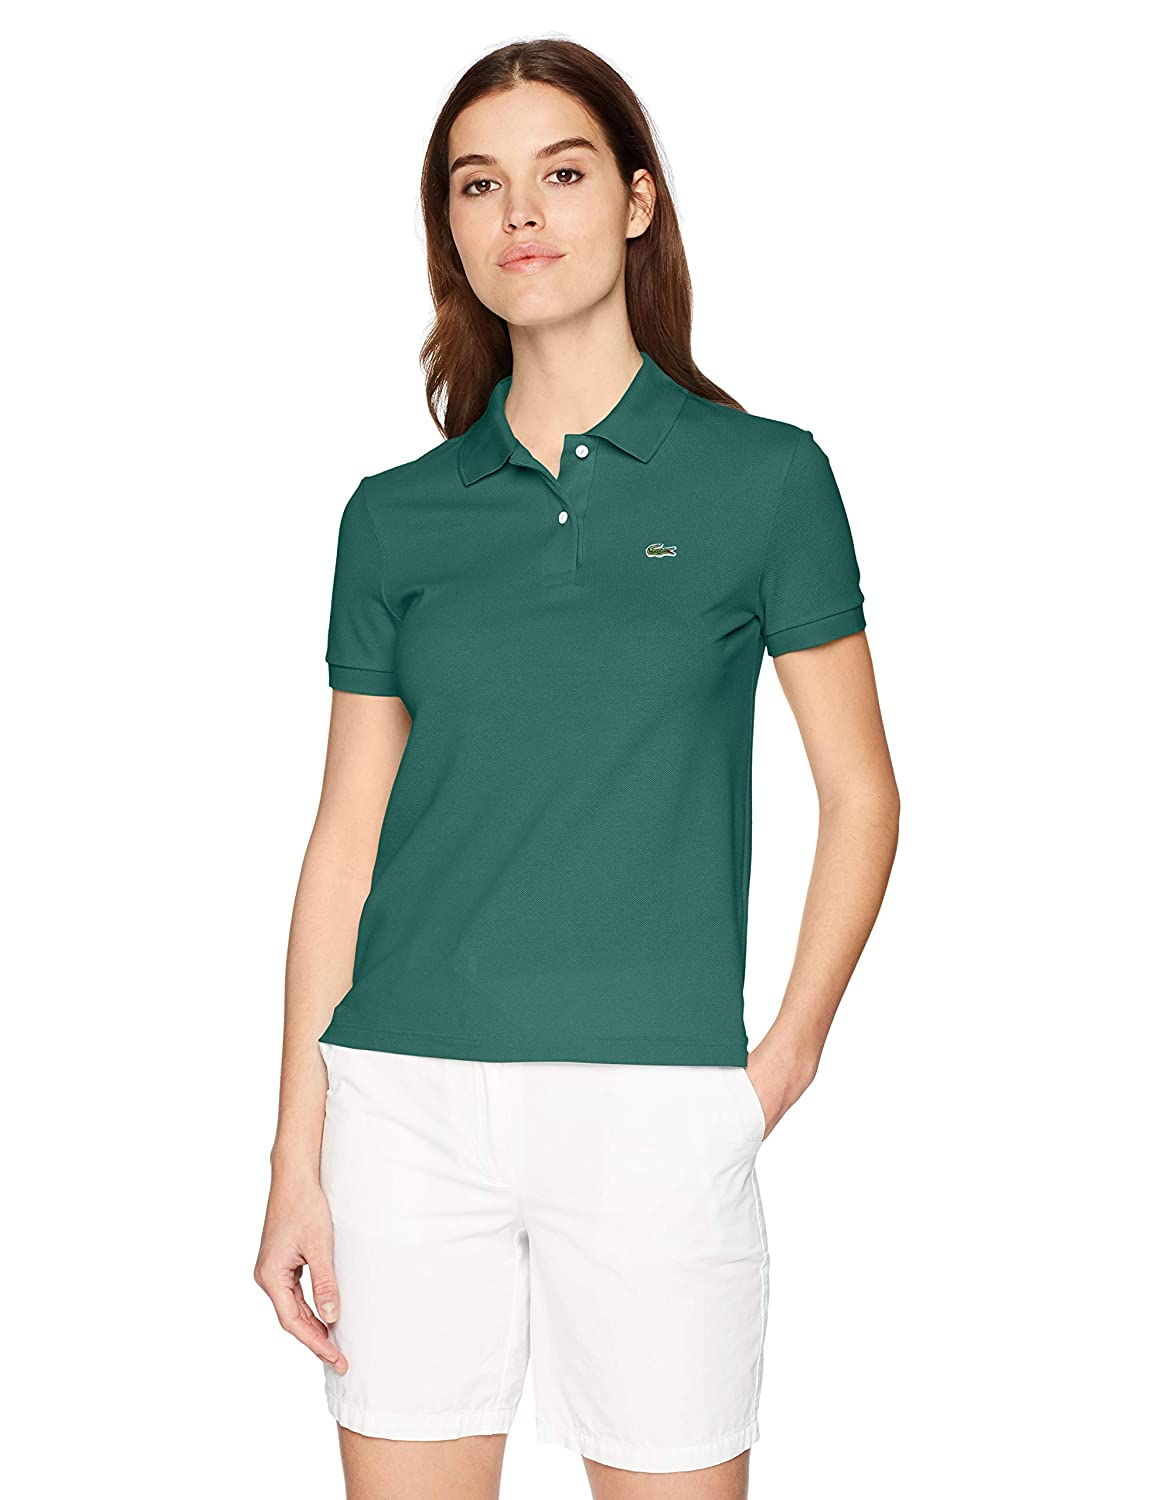 2cae2ccd40f2a6 Lacoste Women s Classic Fit Short Sleeve Soft Cotton Petit Piqué Polo at  Amazon Women s Clothing store